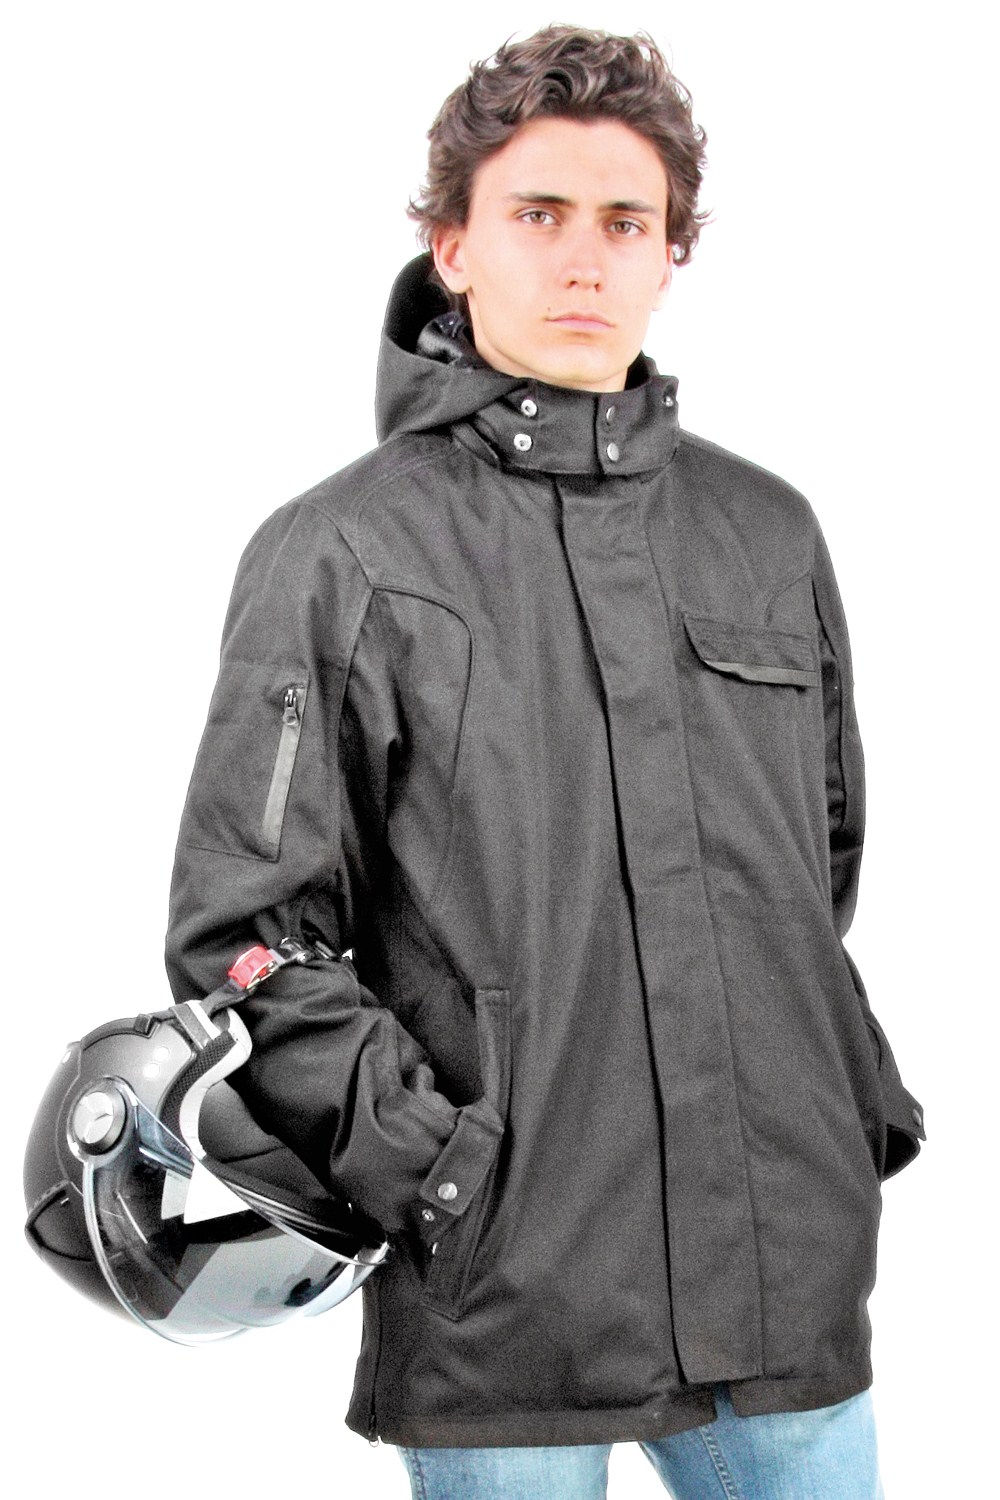 OJ Horizon Man jacket black